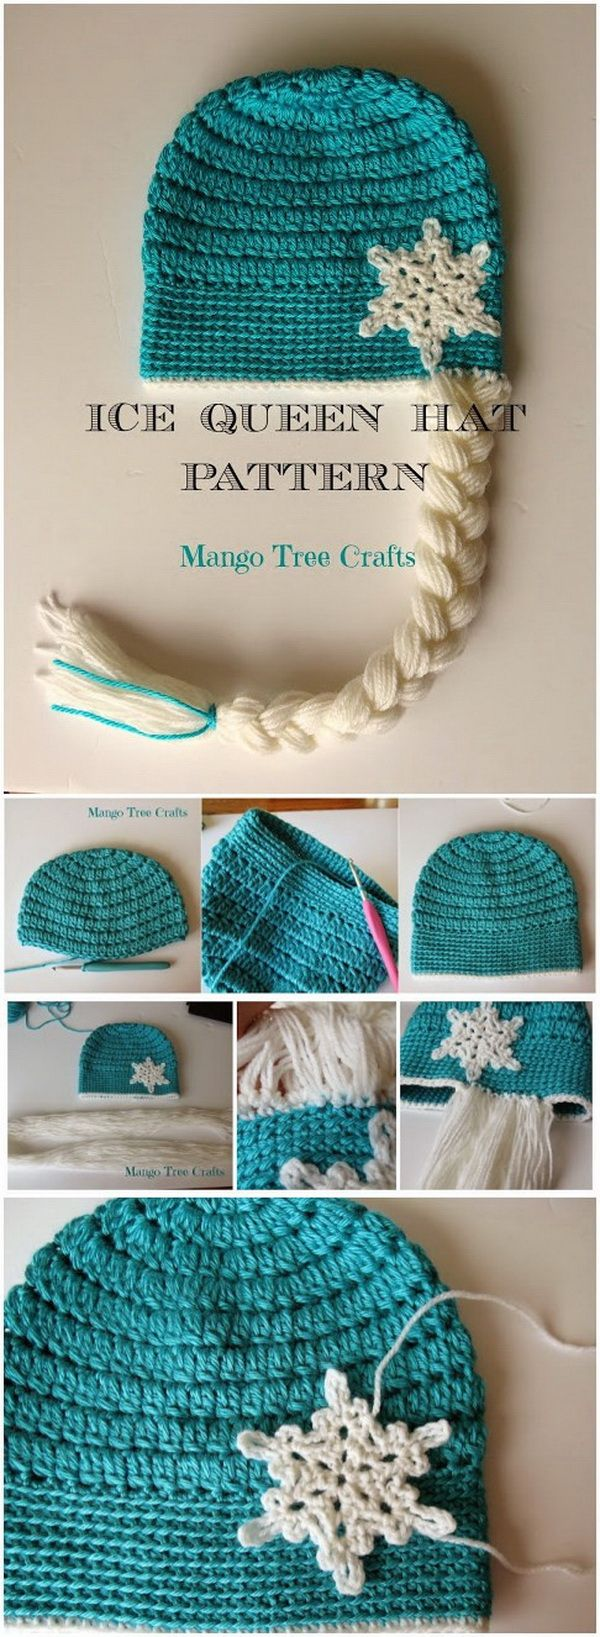 Ice Queen Crochet Hat Pattern. Another crochet hat pattern for Ice Queen lovers.